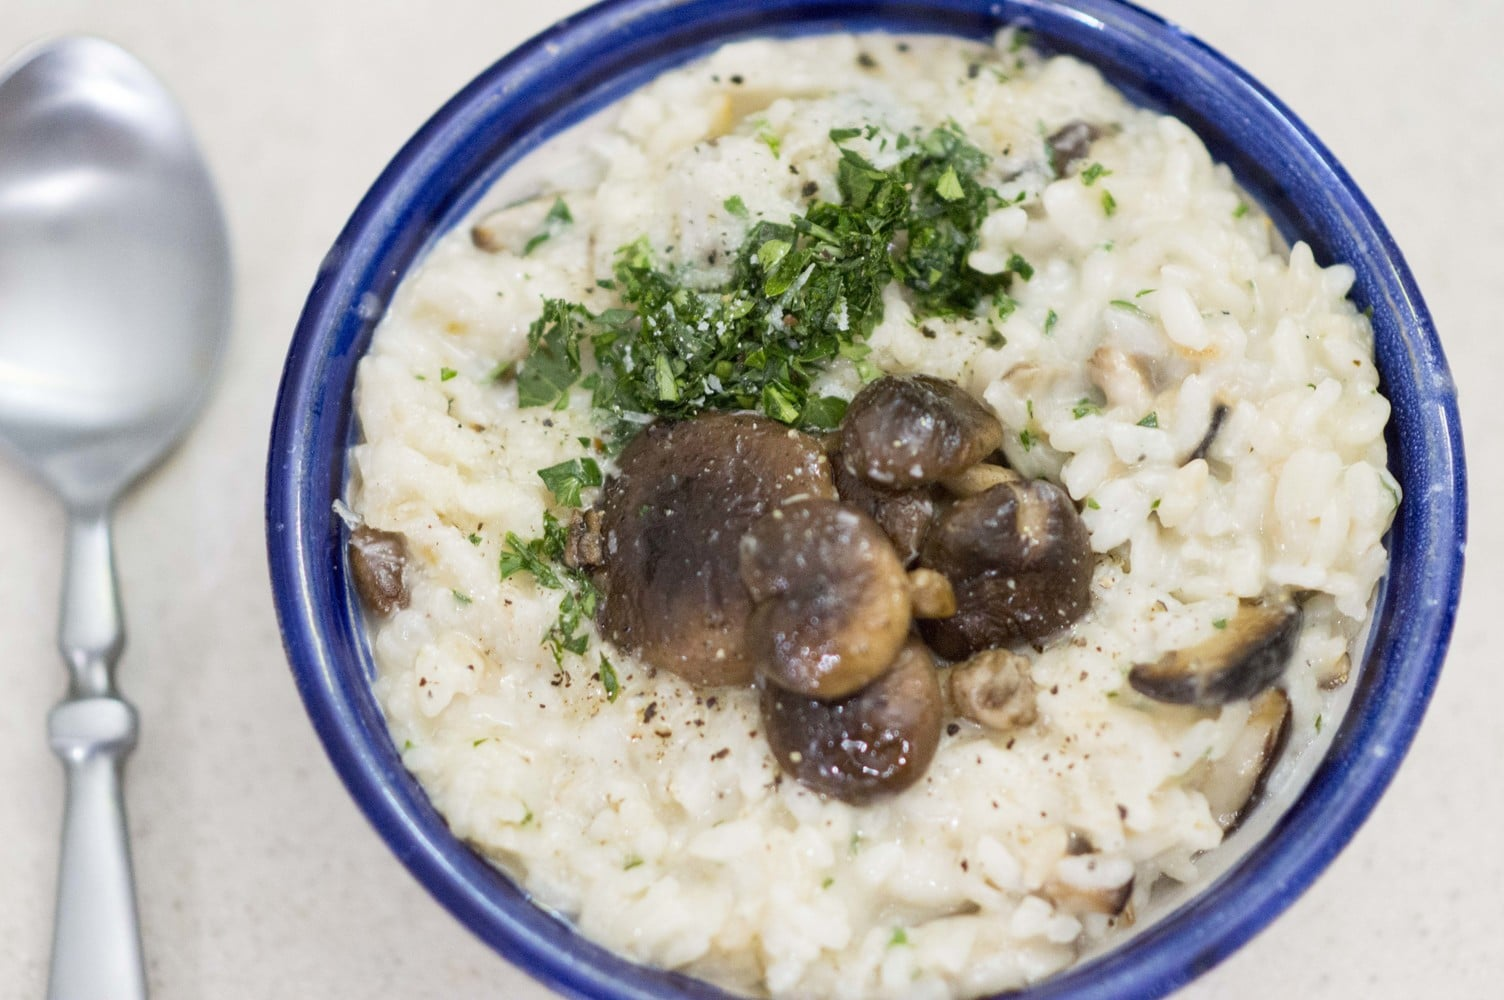 The Shiitake Mushroom Risotto plated and ready to serve